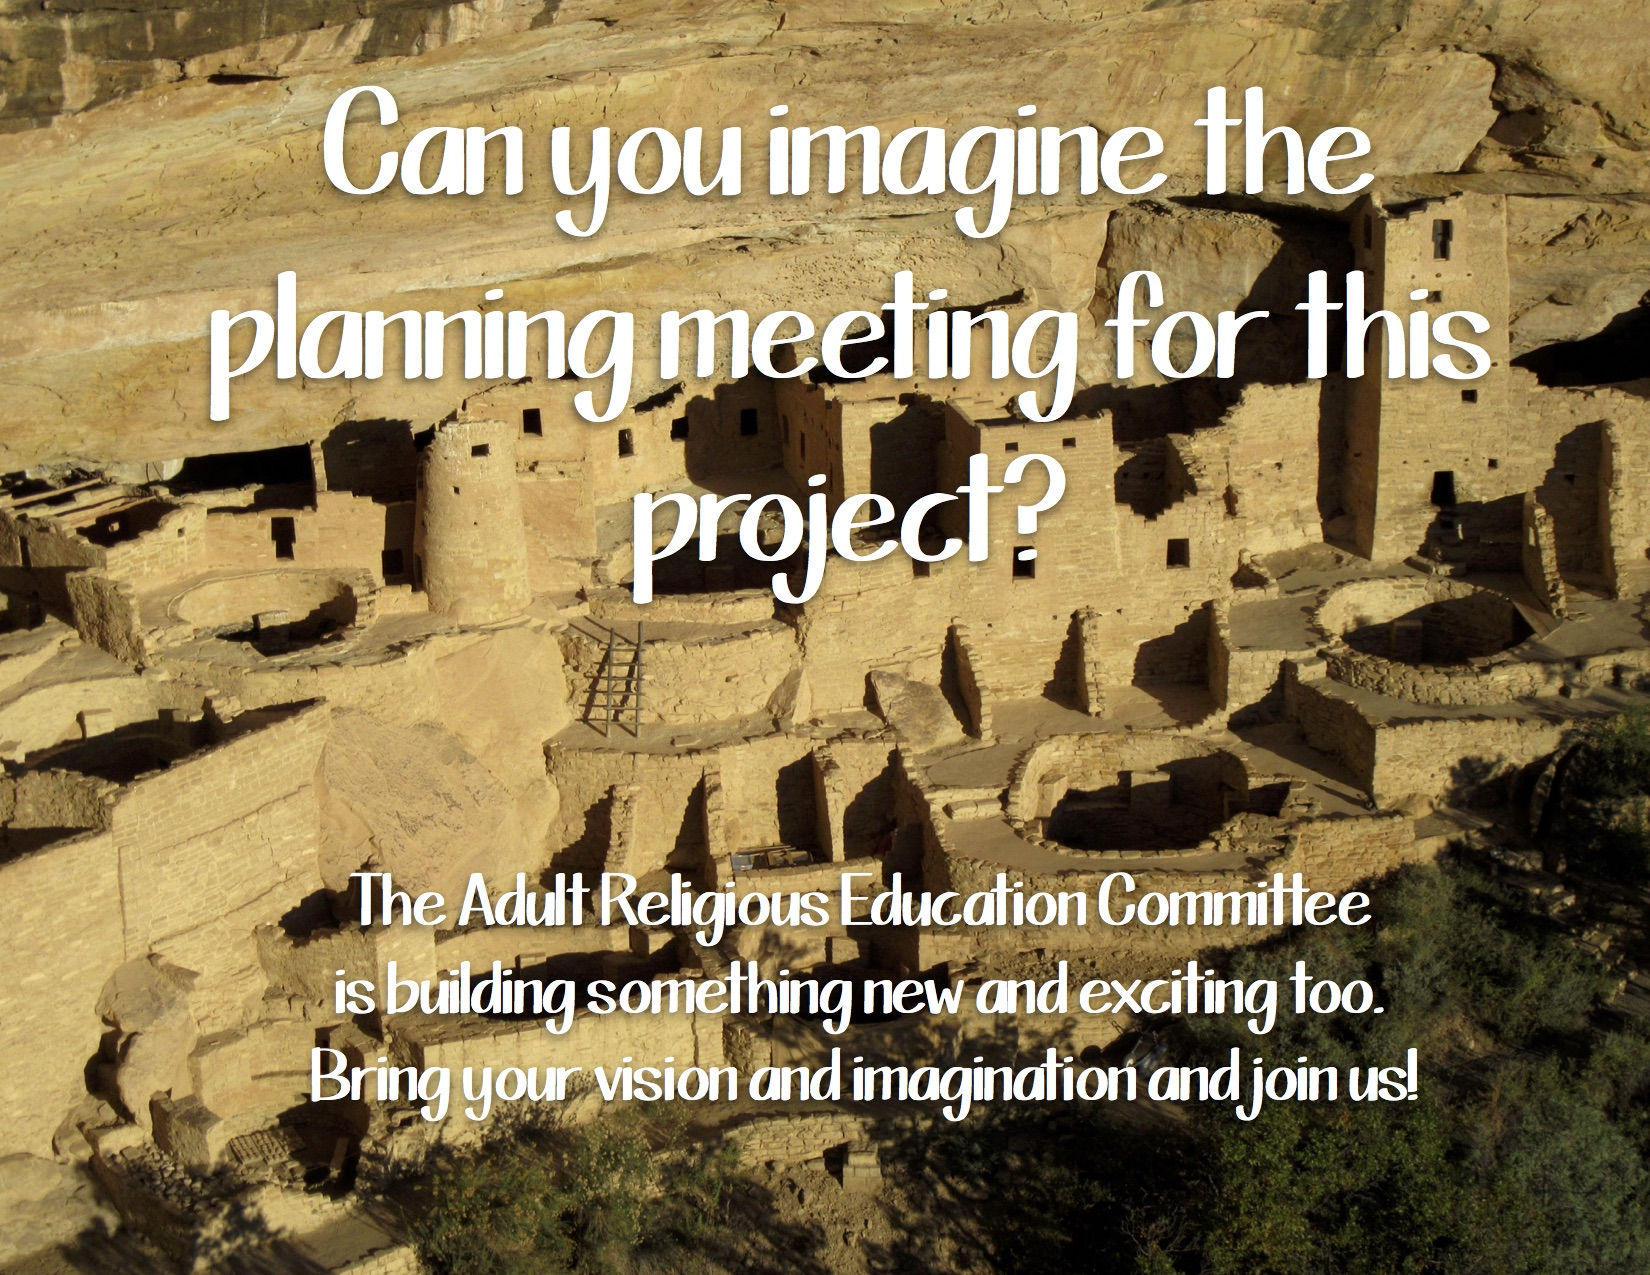 Mesa Verde: Can you imagine the planning meeting for this project? The Adult Religious Education Committee is building something new and exciting too. Bring your vision and imagination and join us! contact ucm.dre@gmail.com